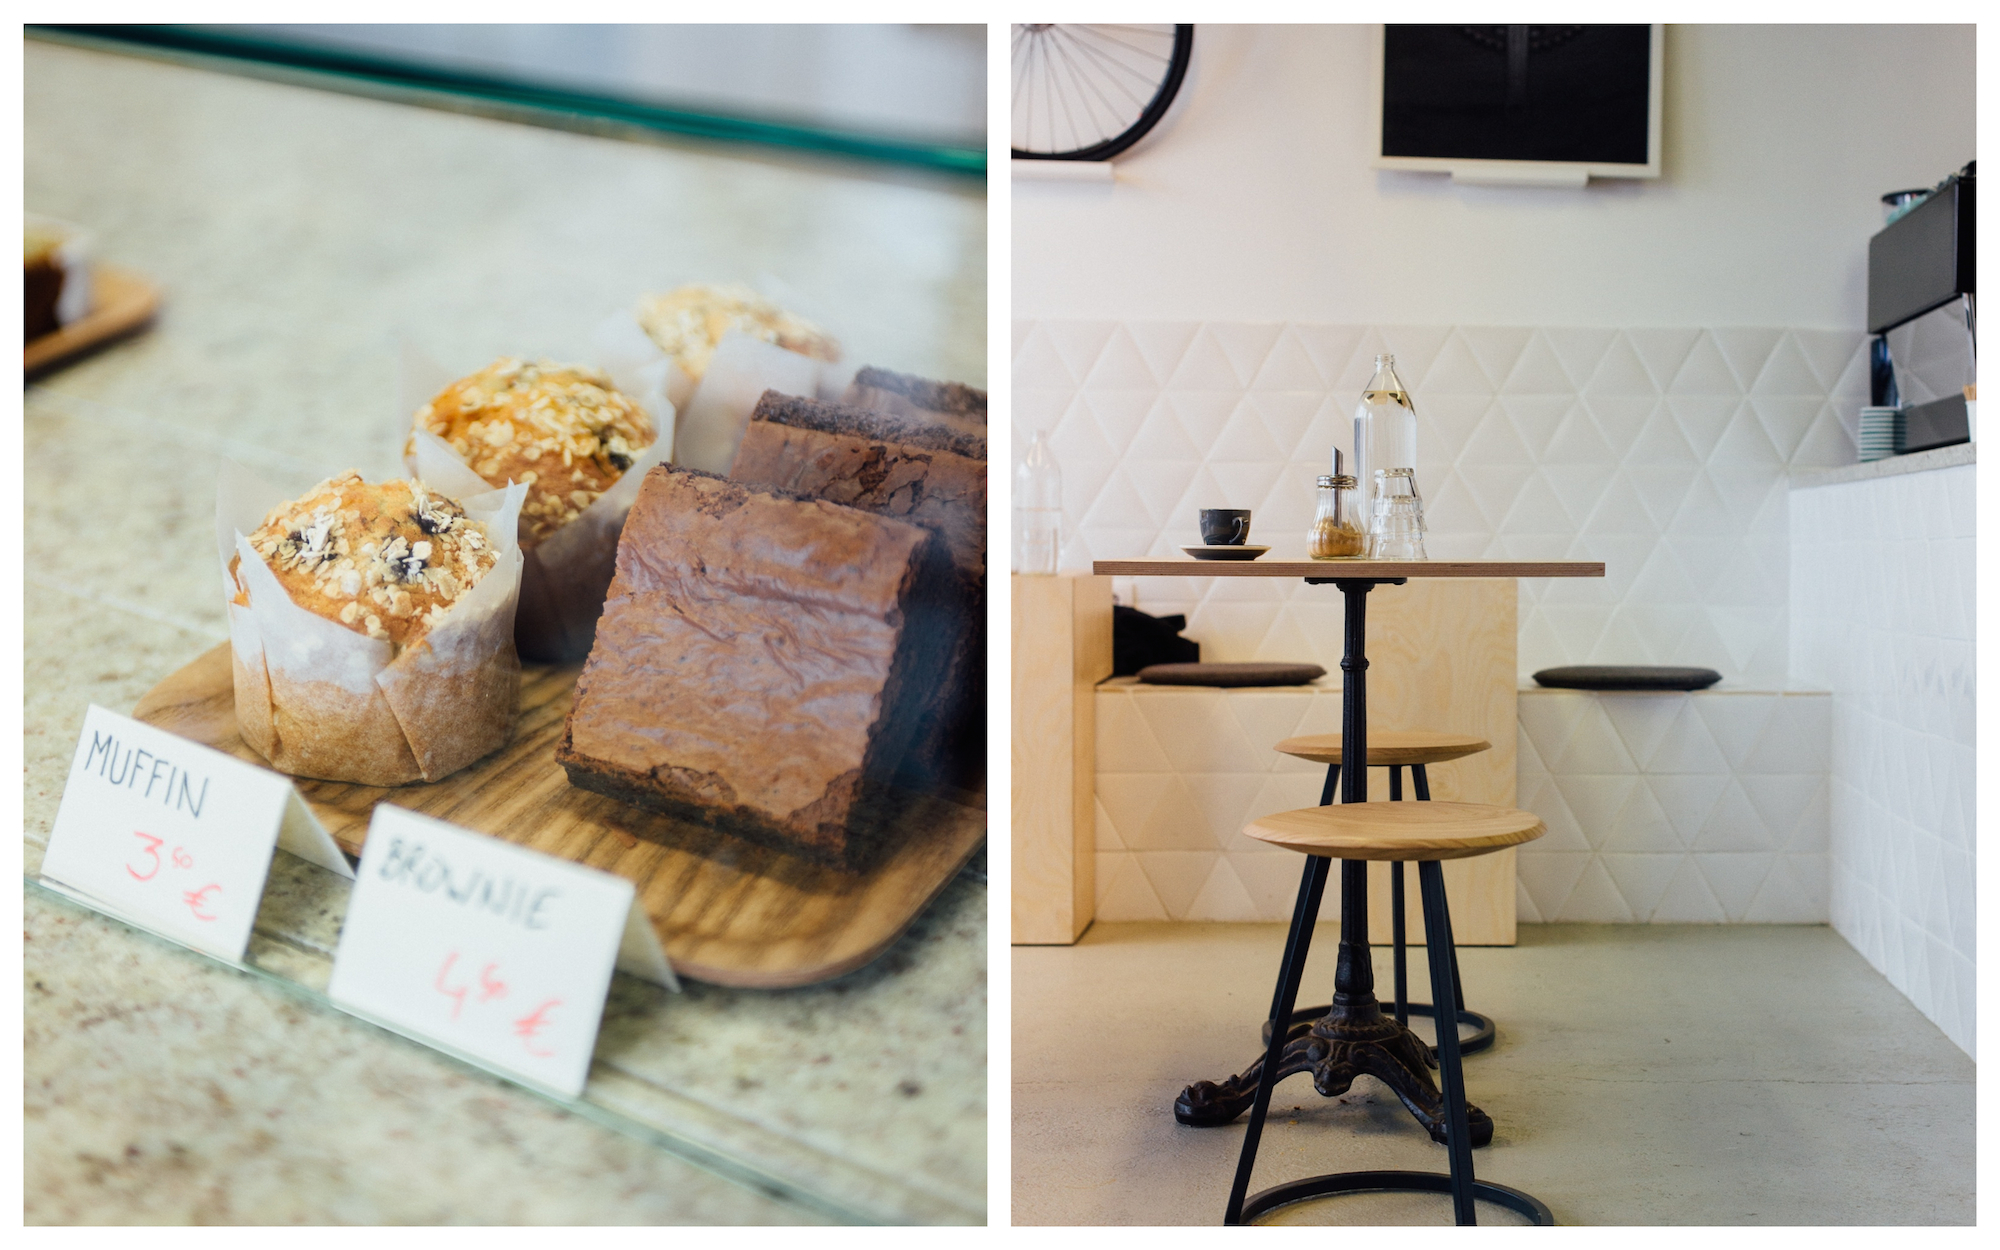 The muffins and chocolate brownies at Steel concept store in Paris (left), and the casual seating area at the concept store's cafe (right).